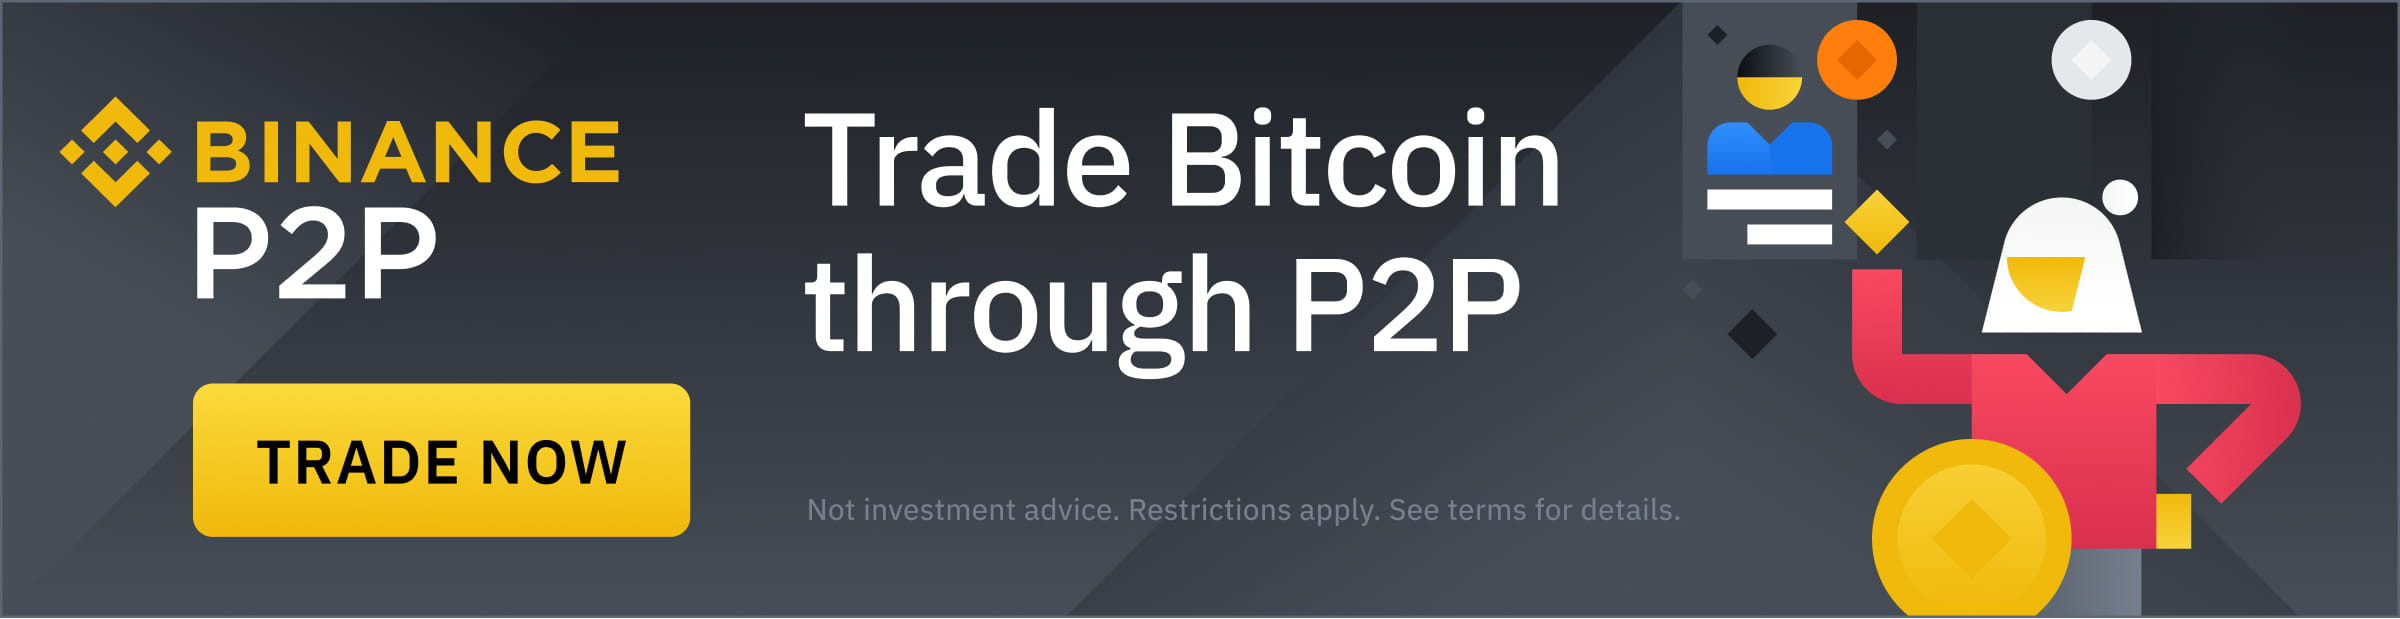 How Binance P2P creates a safe trading environment with the lowest trading fees on the marketCryptocurrency Trading Signals, Strategies & Templates | DexStrats